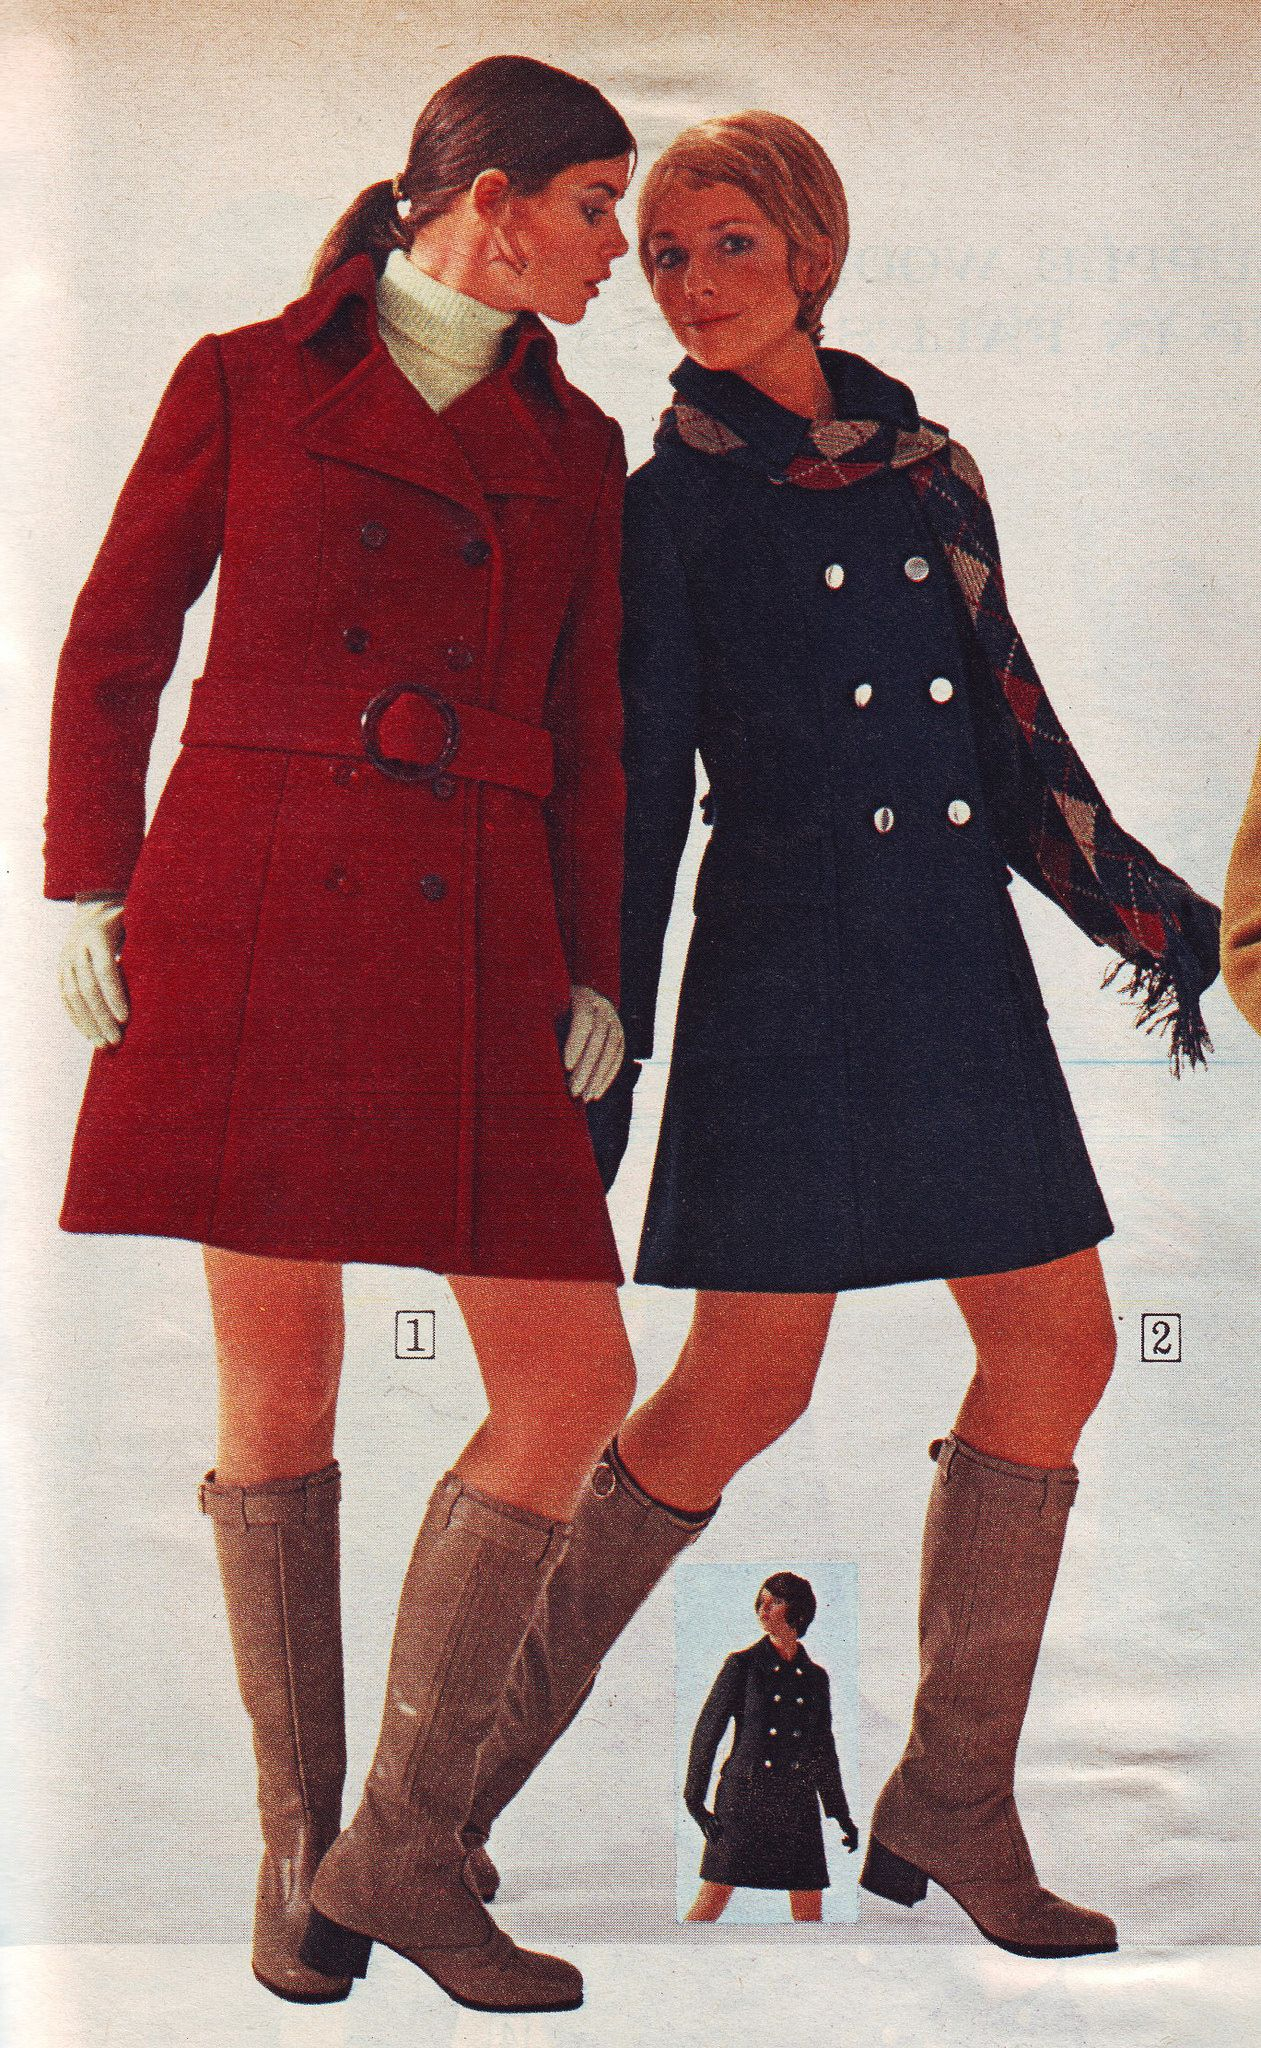 Sears 70 fw red and blue